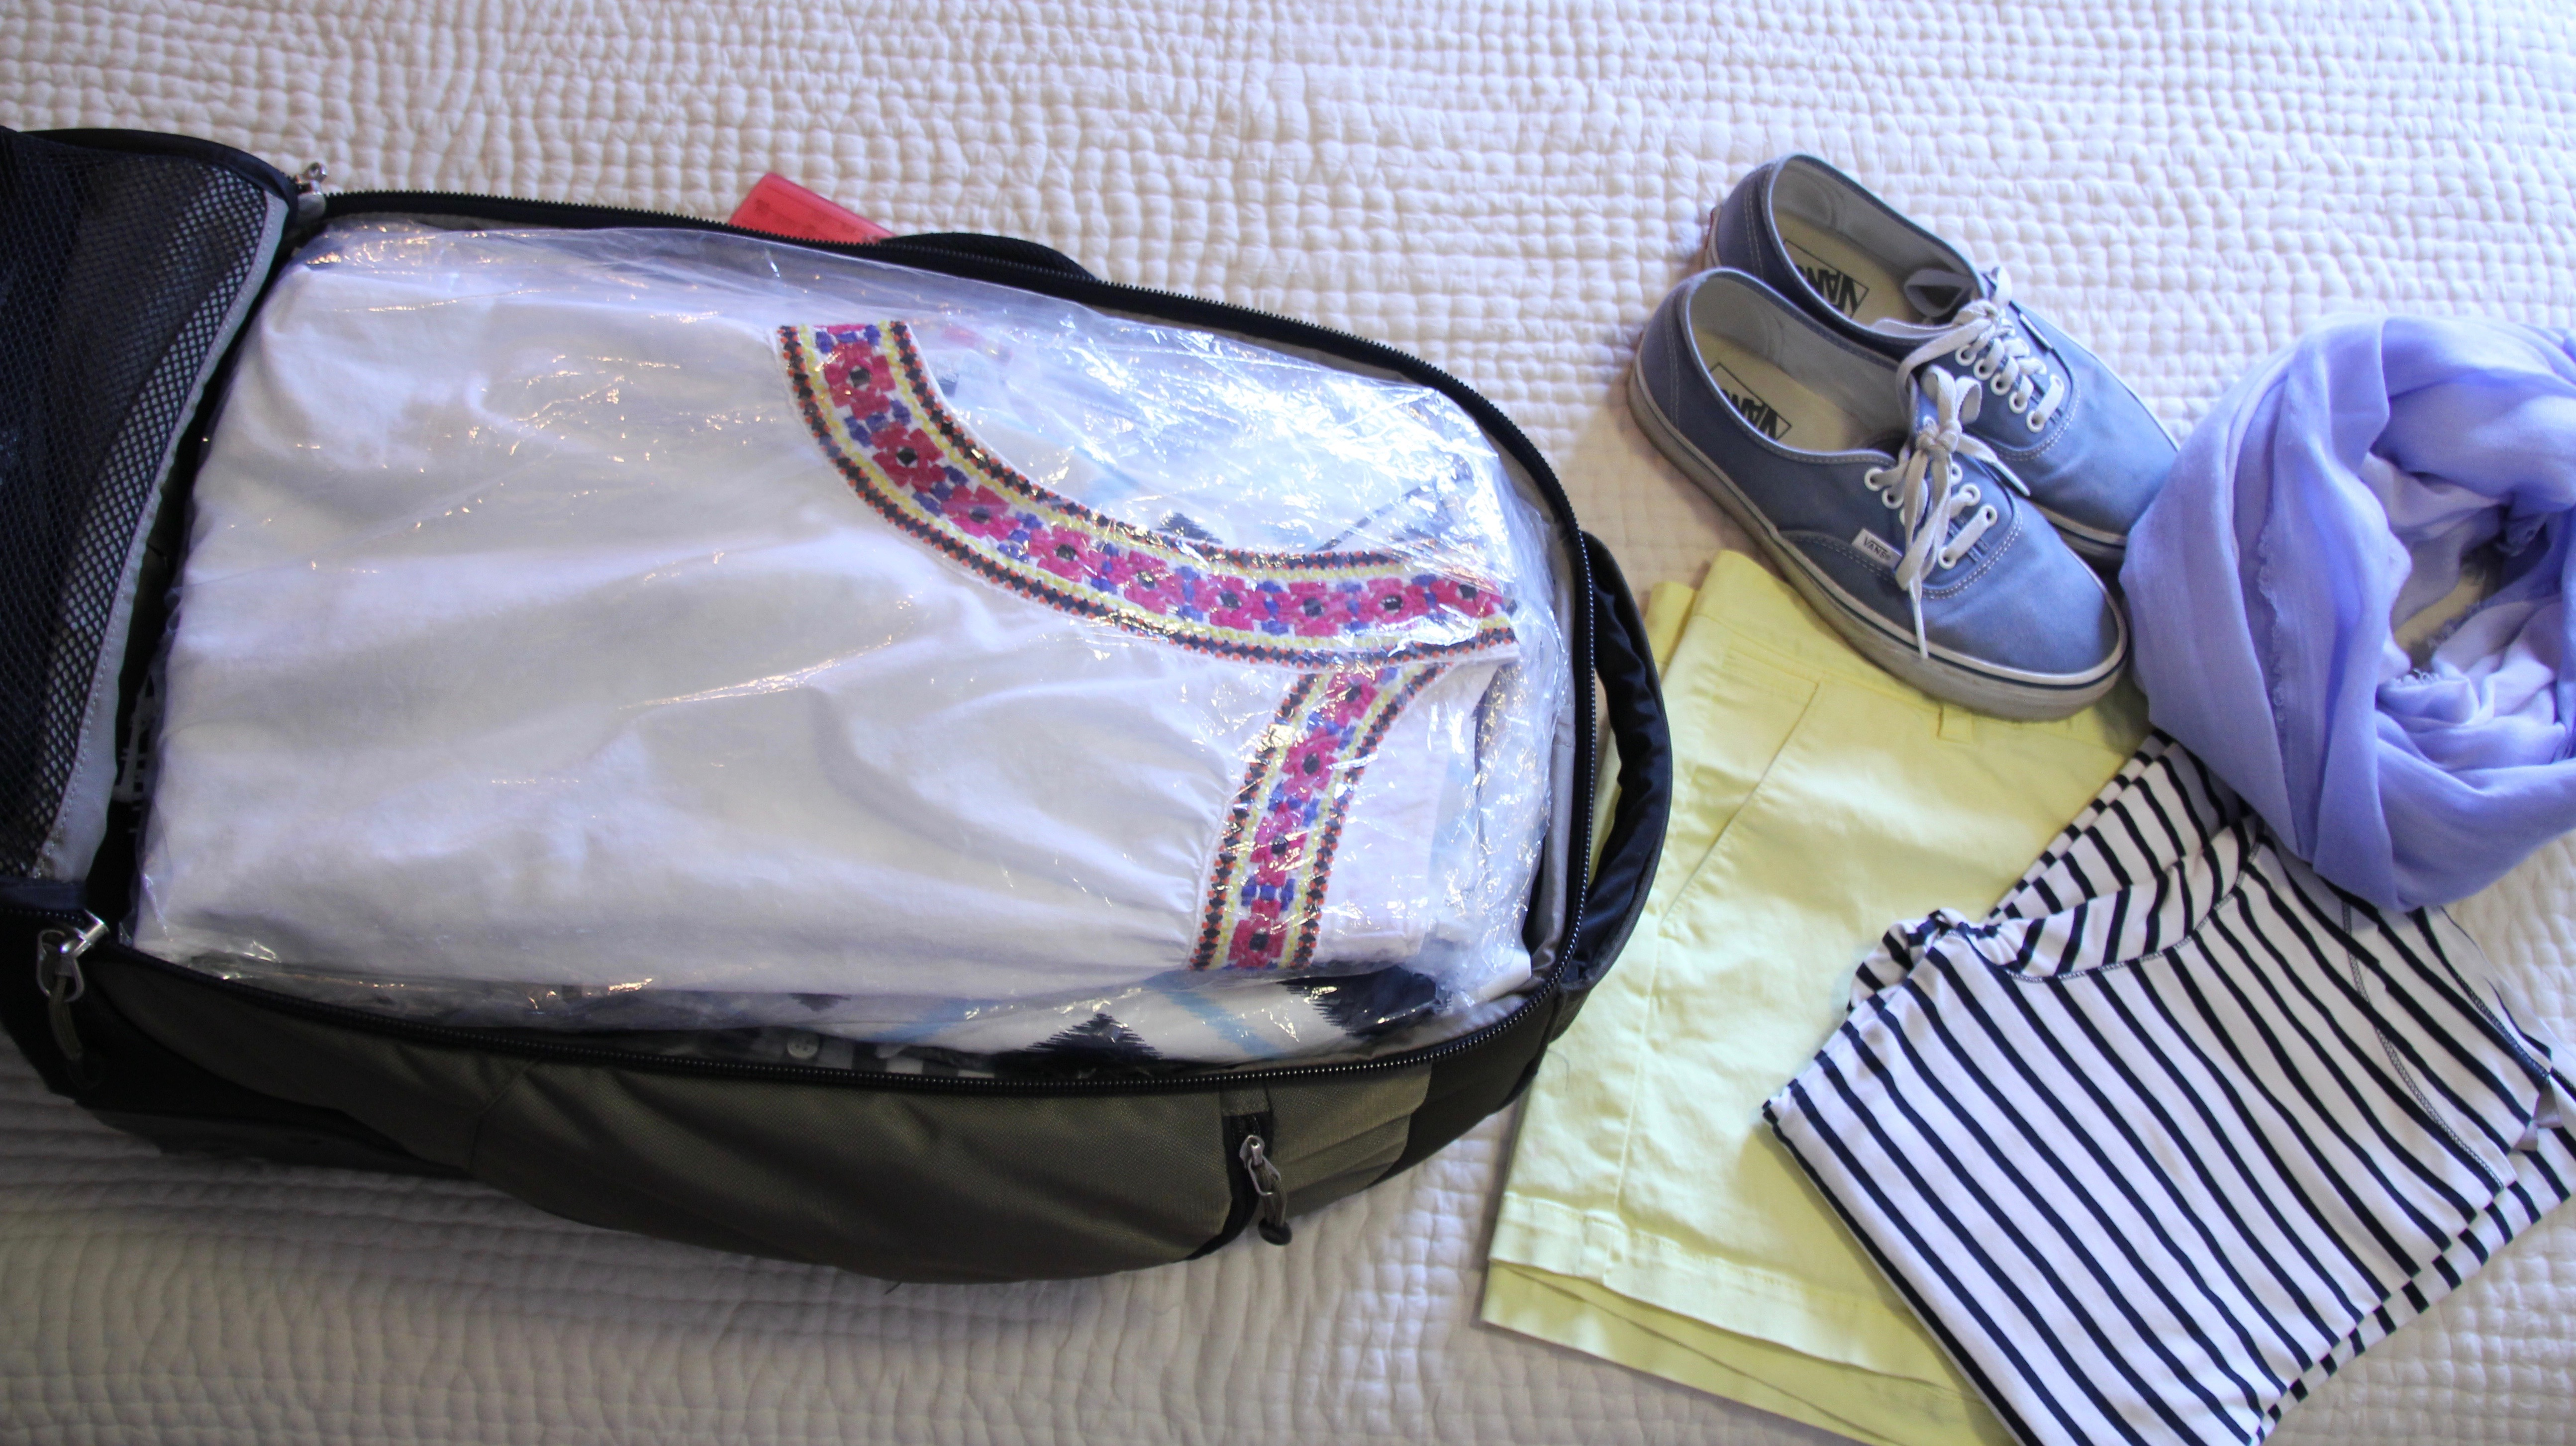 packed suitcase and travel outfit